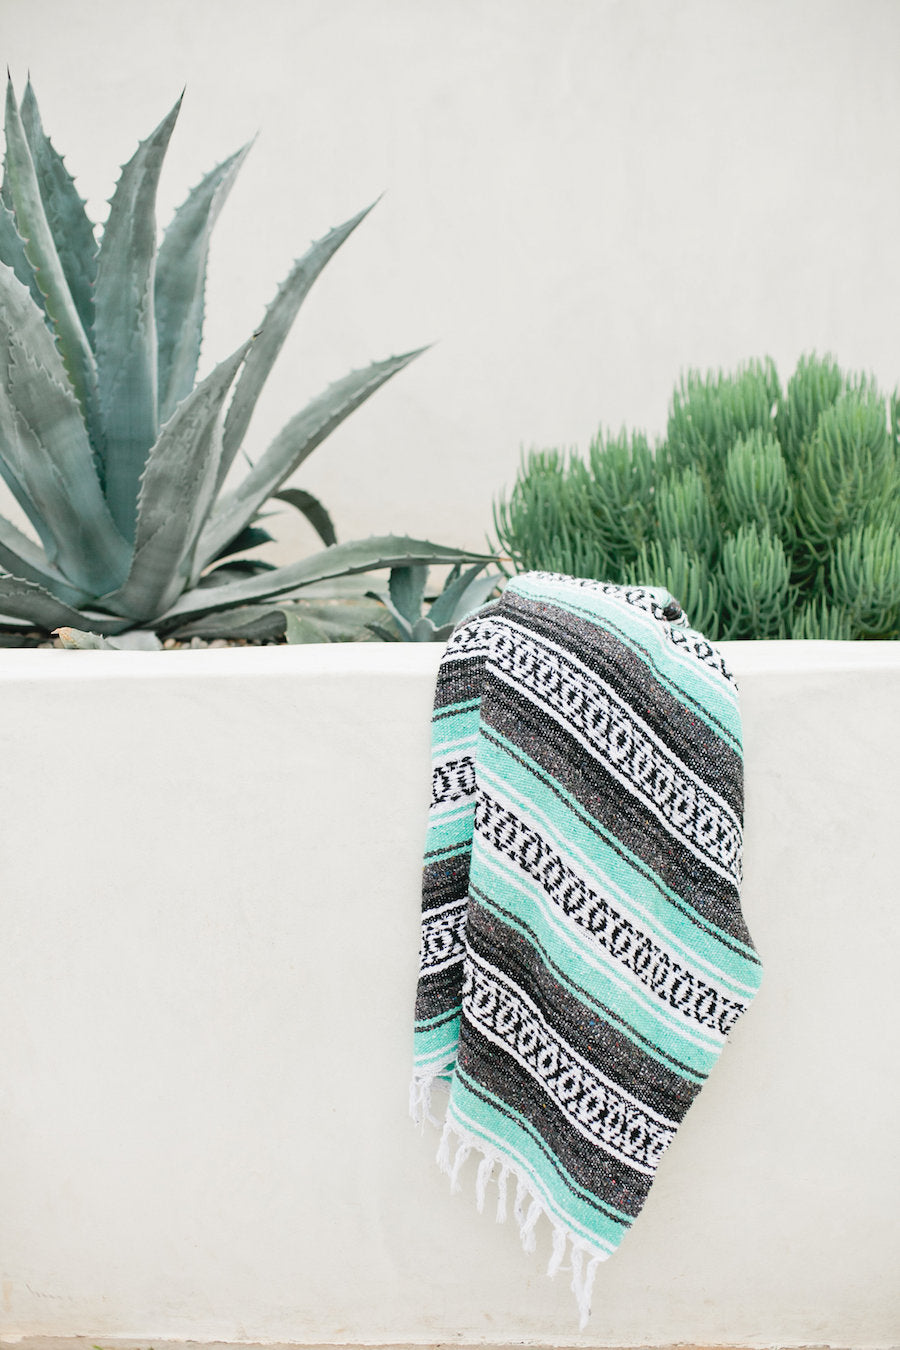 beijos x gunn swain summer collection gunn swain we teamed up our pals at beijos to curate this collection of blankets that s perfect for summer road trips and beach adventures